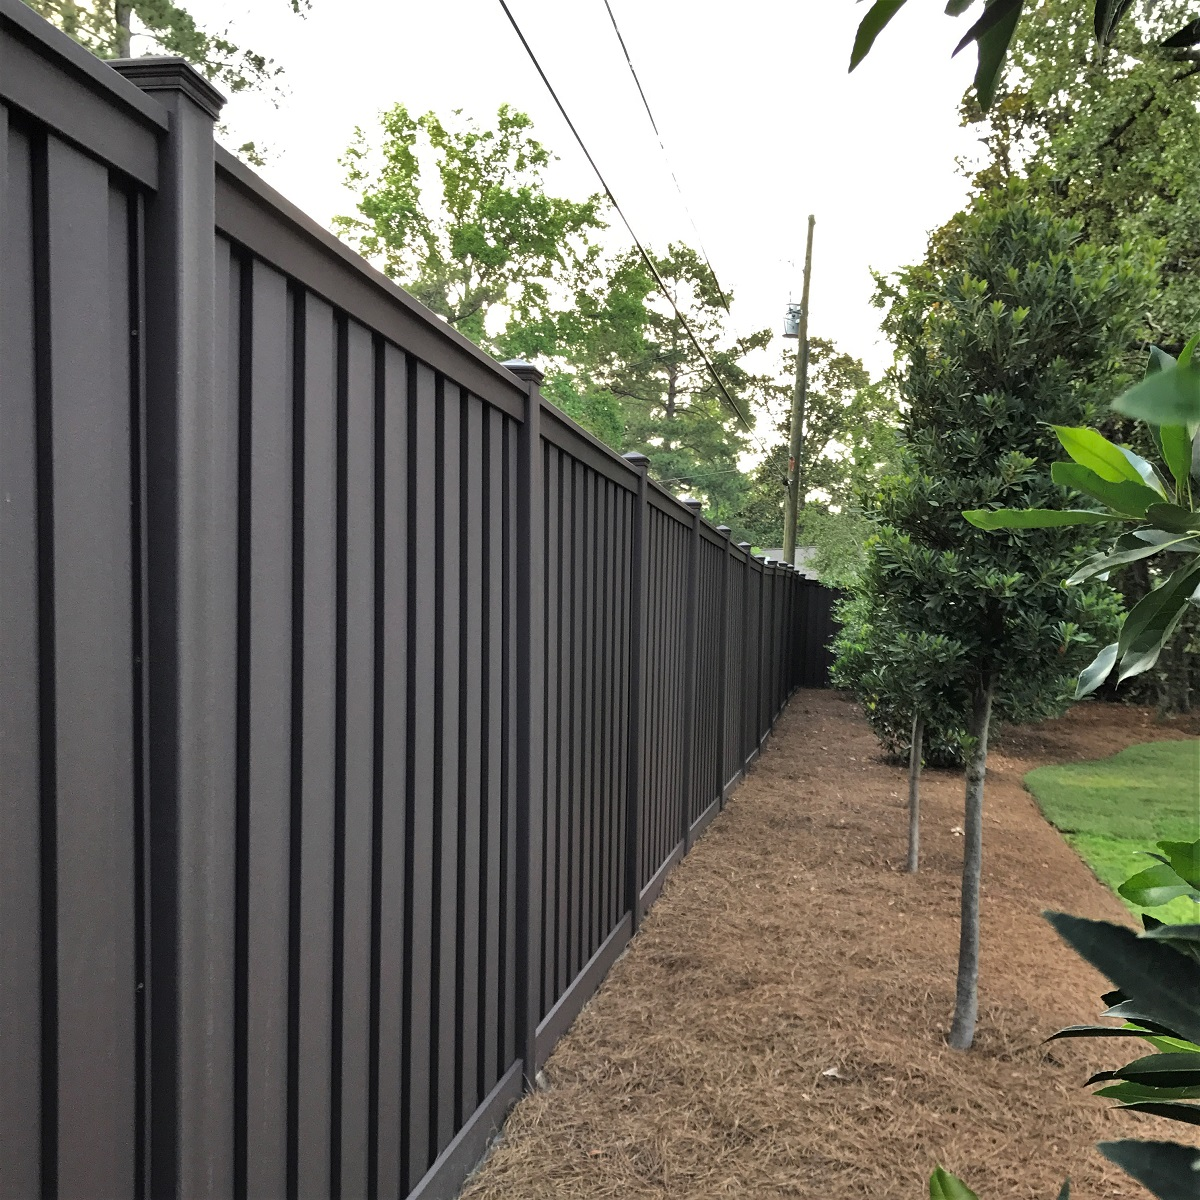 An 8 ft. tall Trex privacy Fence in a South Carolina residence's backyard.